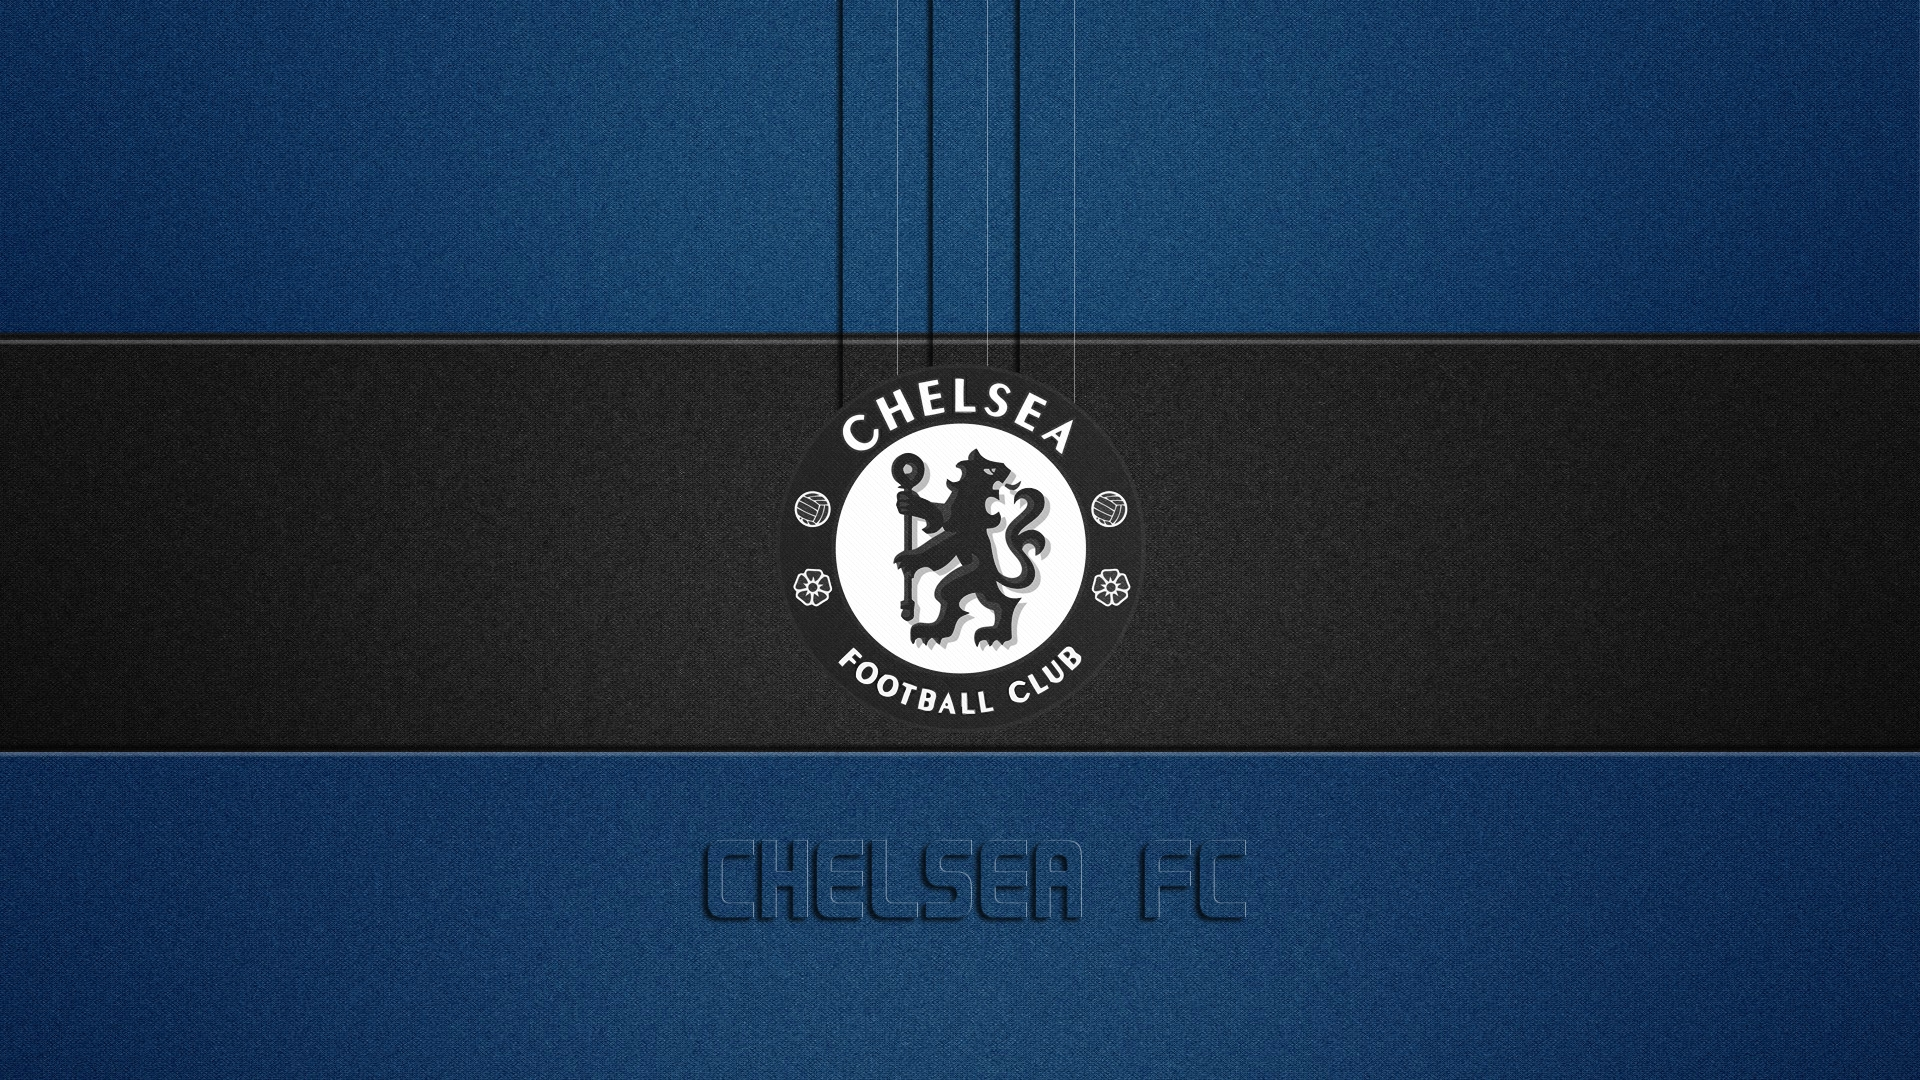 Download wallpaper 1920x1080 chelsea emblem logo champions get the latest chelsea emblem logo news pictures and videos and learn all about chelsea emblem logo from wallpapers4u your wallpaper news source voltagebd Image collections